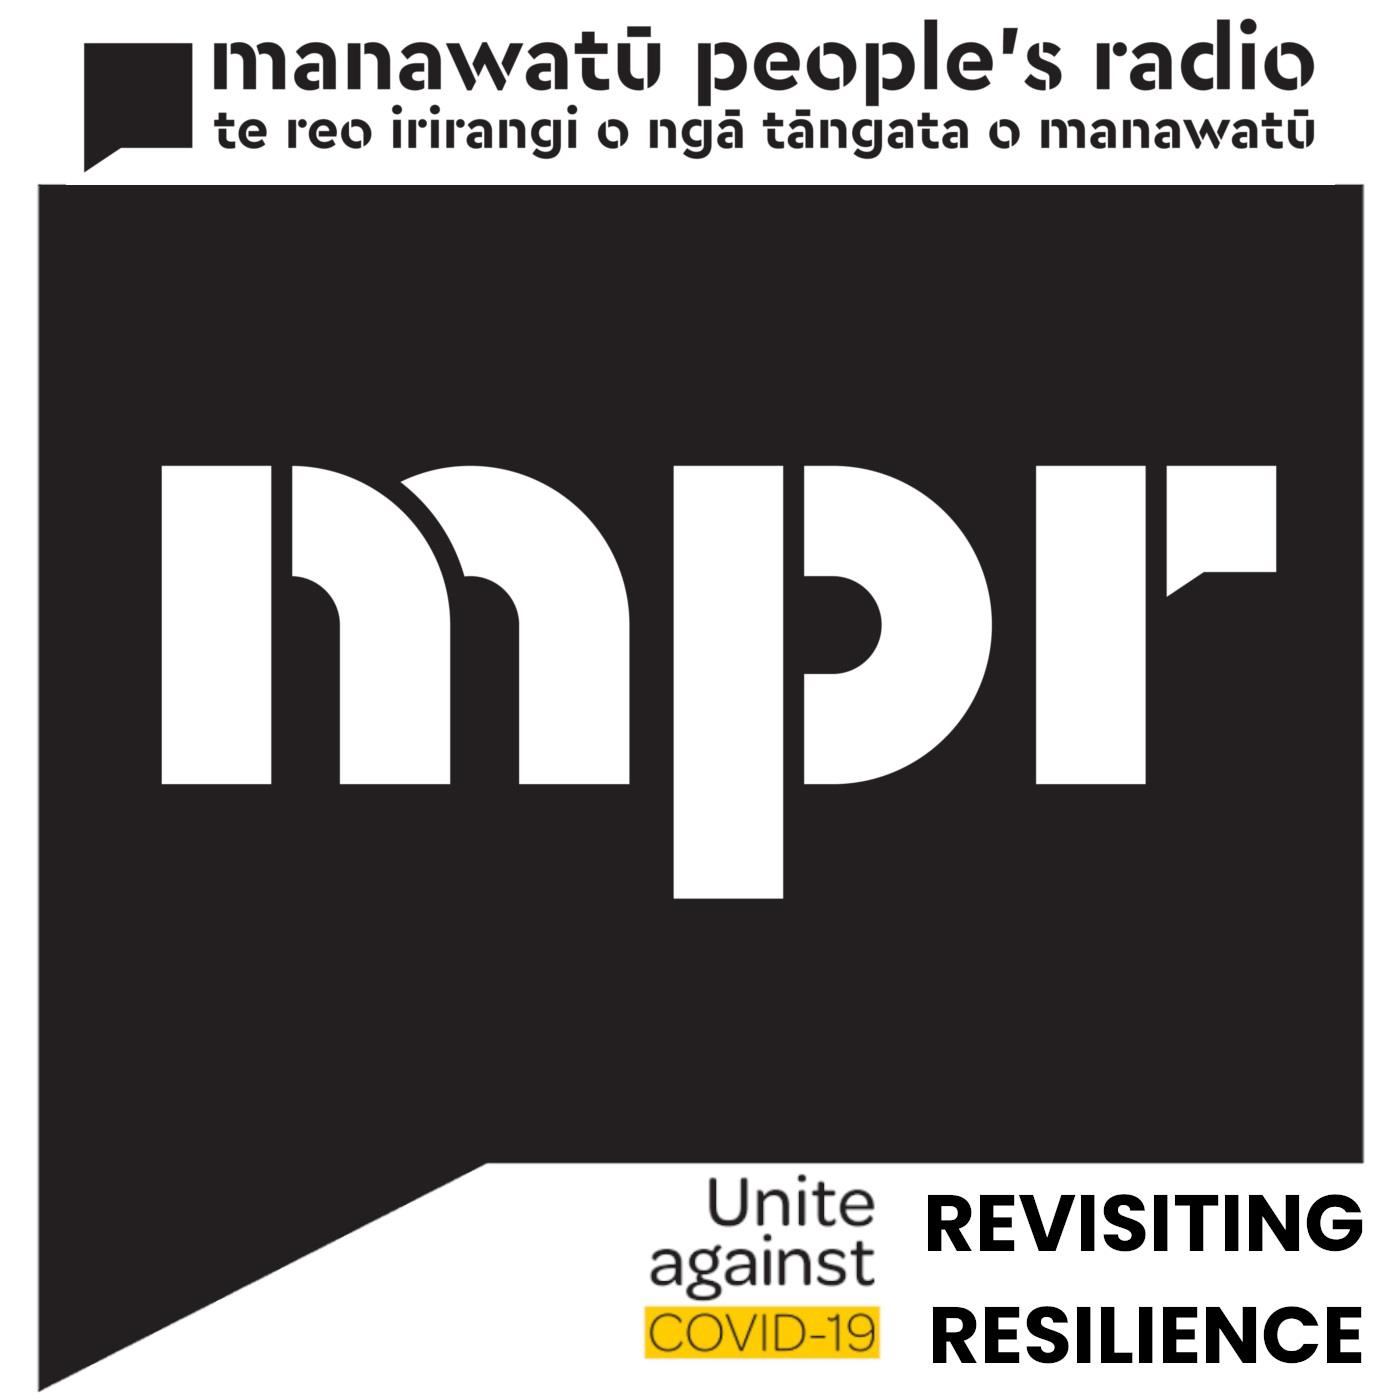 Revisiting Resilience-02-07-2020